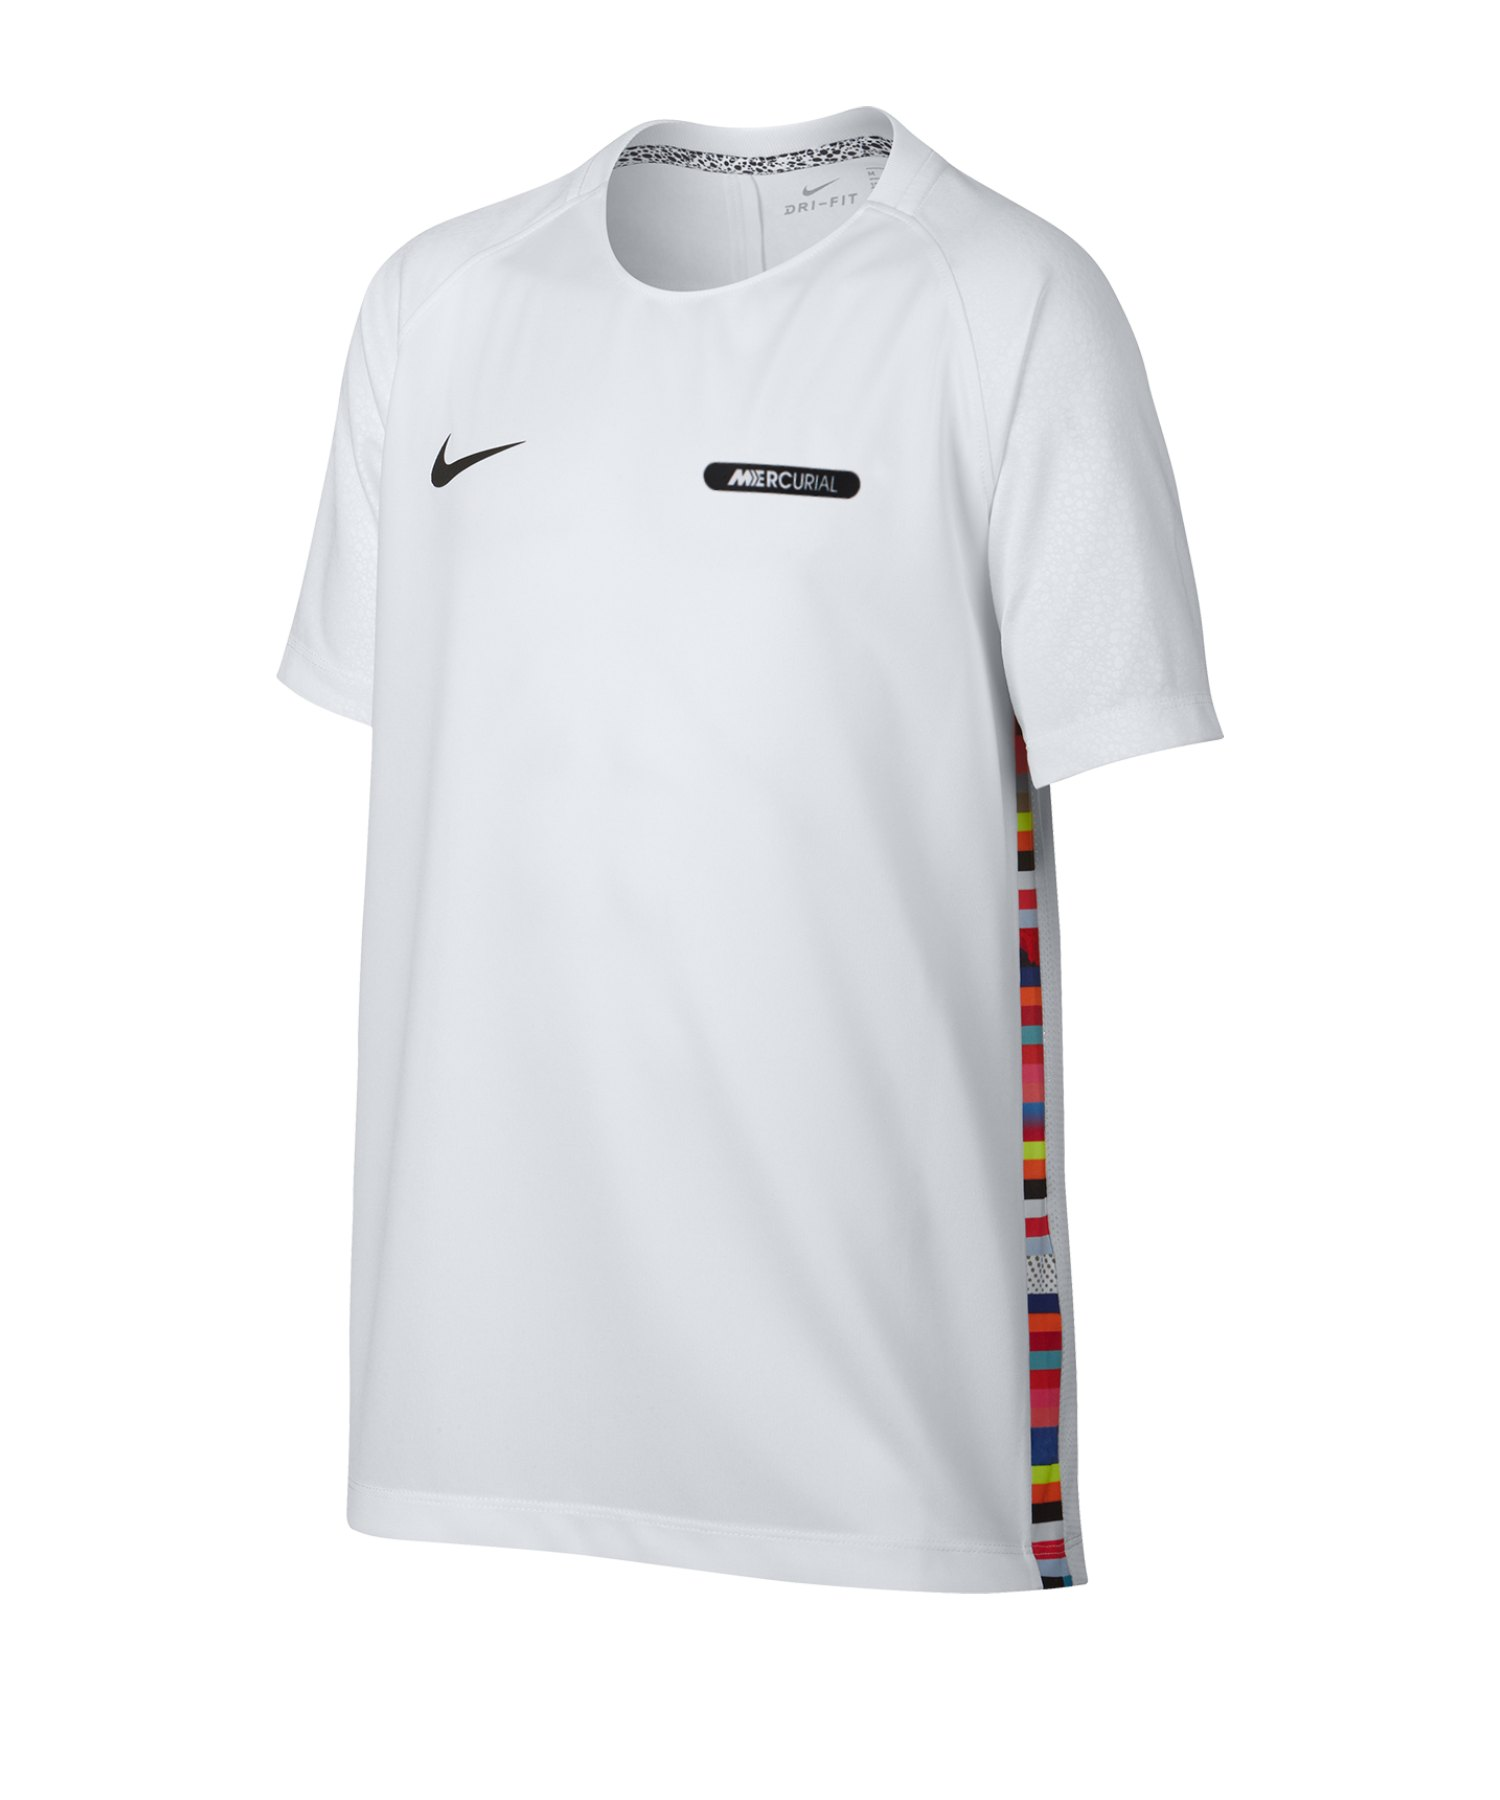 Nike Dri-FIT Tee T-Shirt Kids Weiss F100 - Weiss